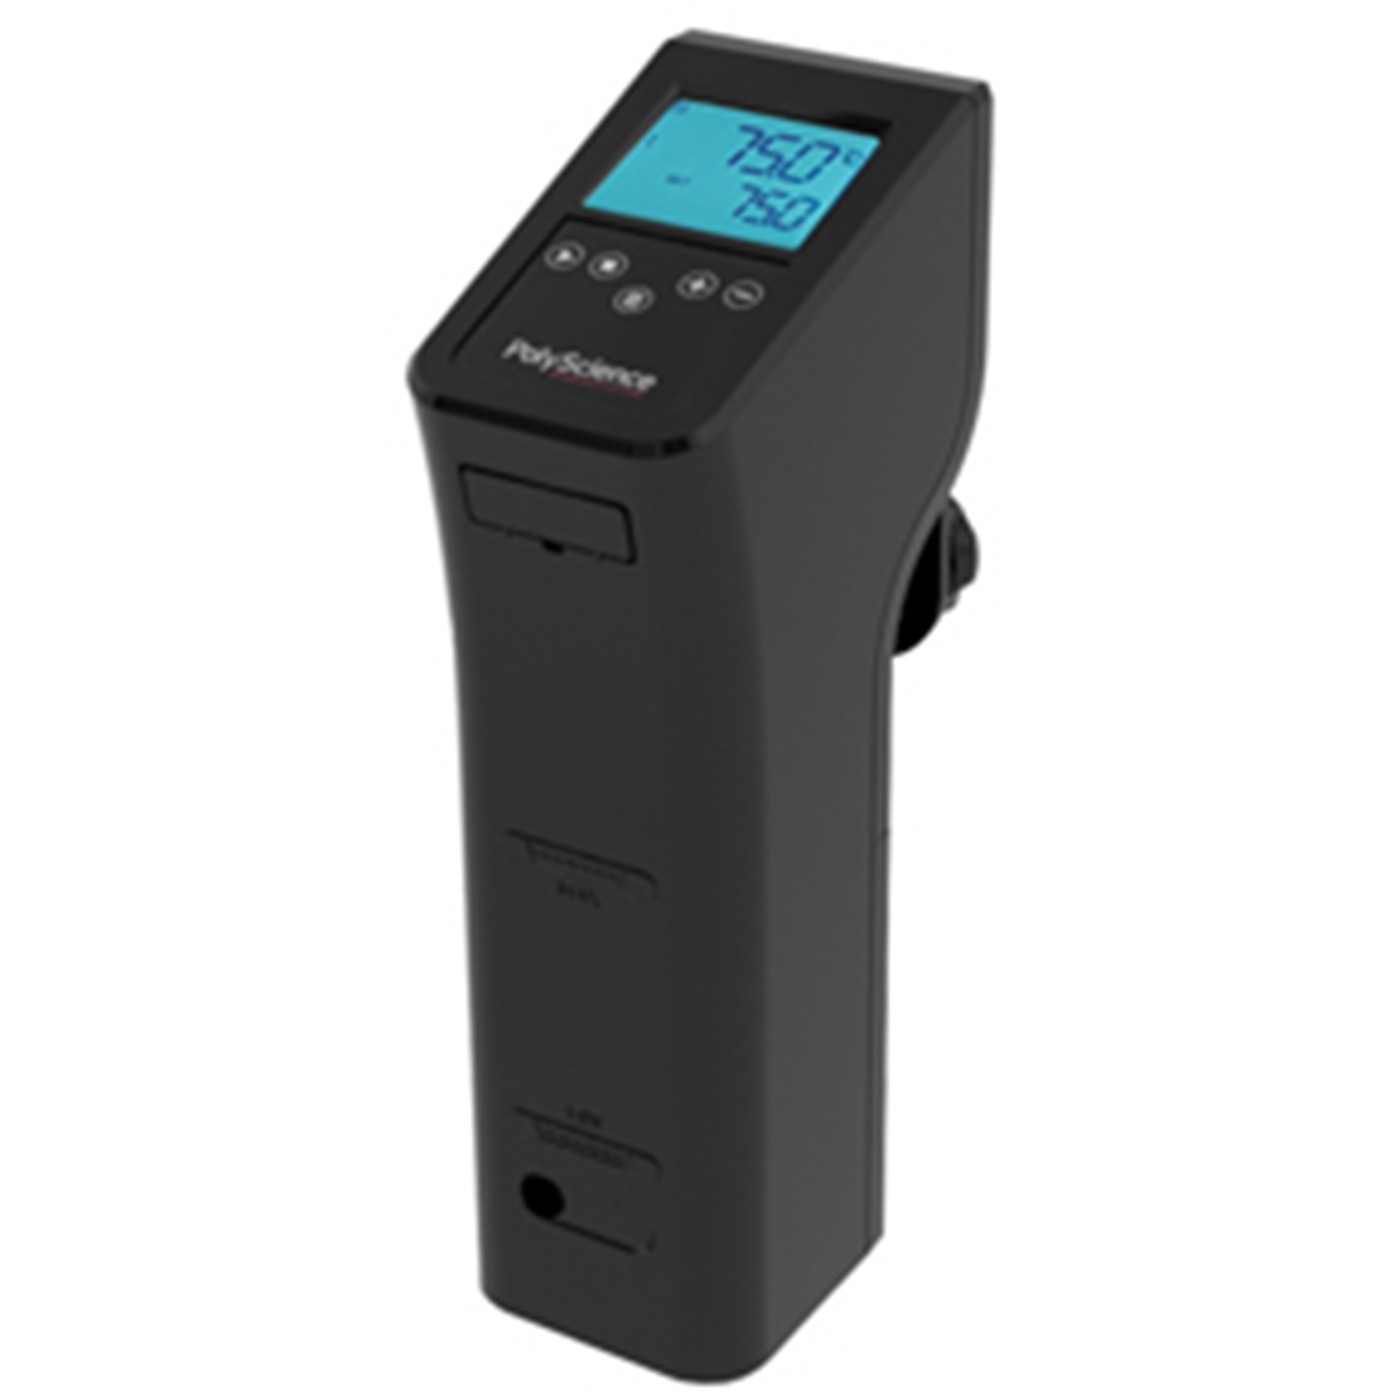 Polyscience LX Immersion Circulator